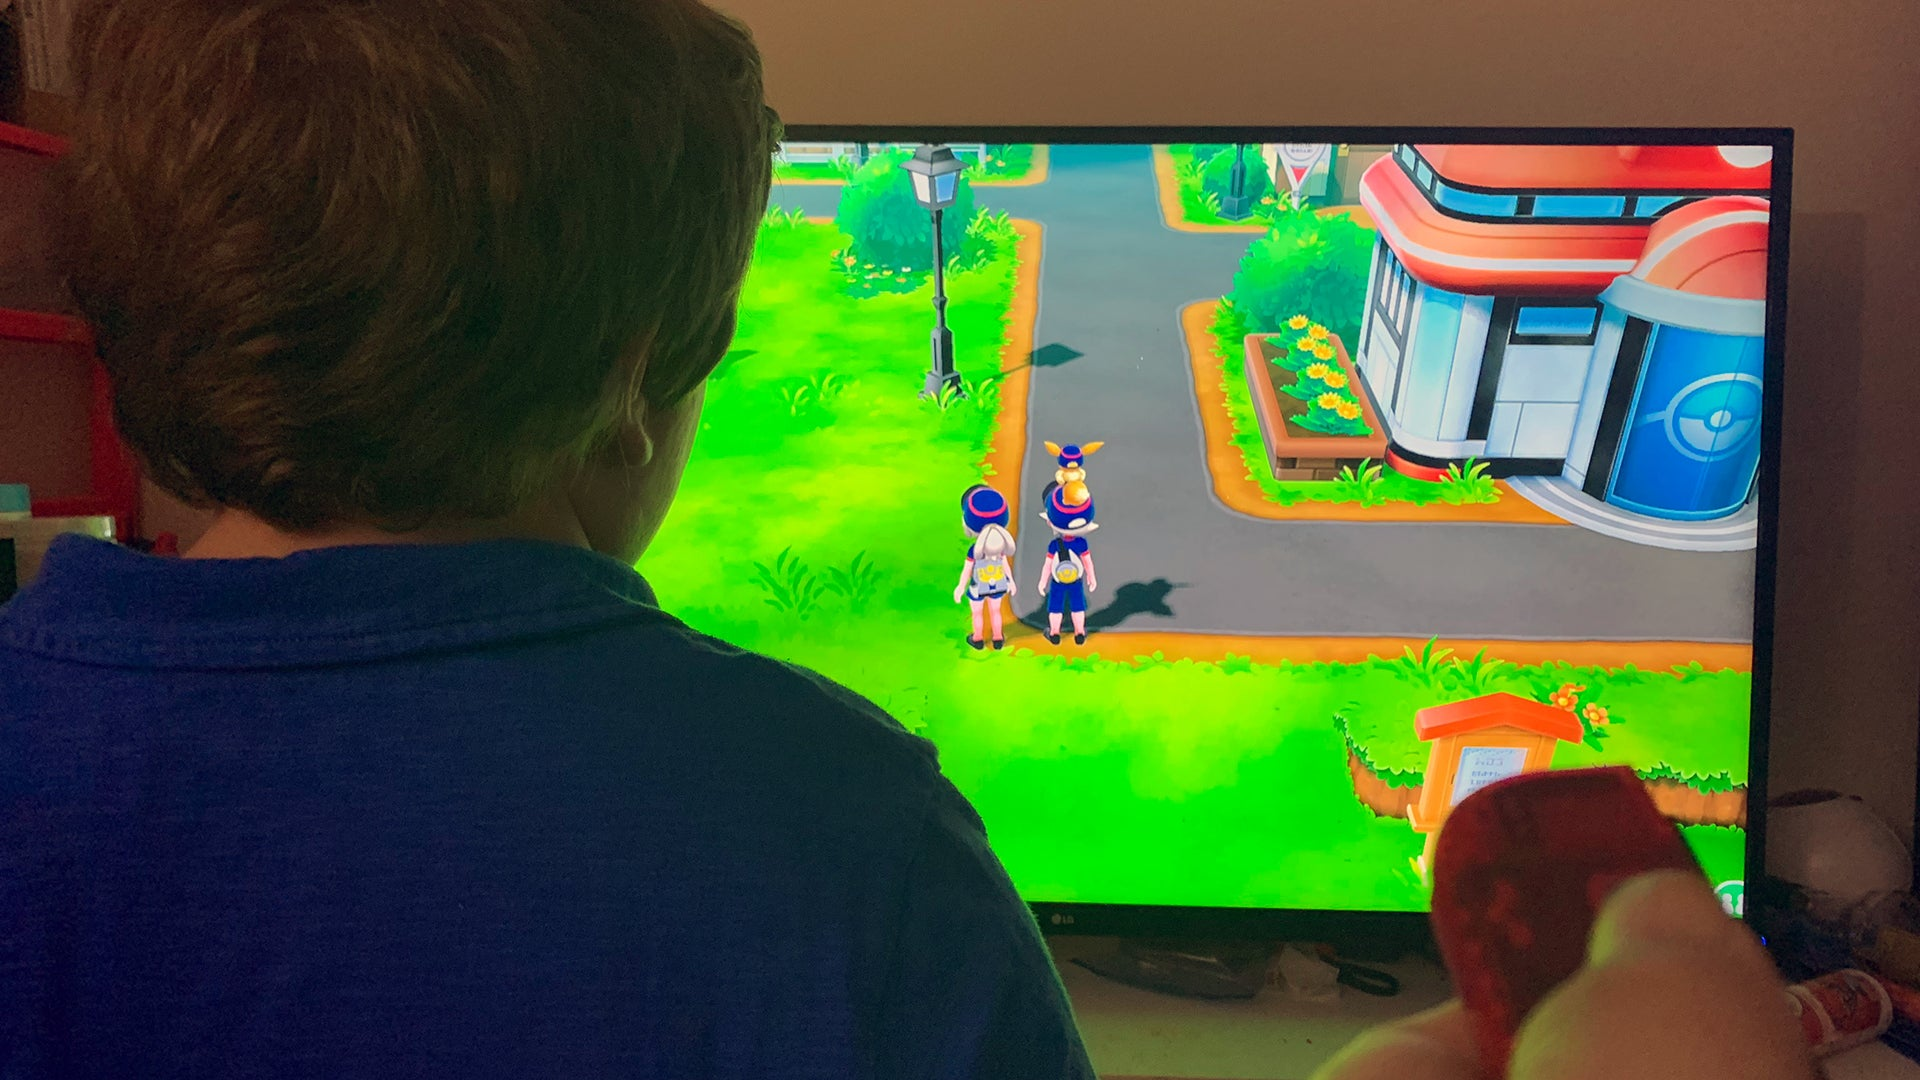 Pokémon Let's Go Helped Me Connect With My Son